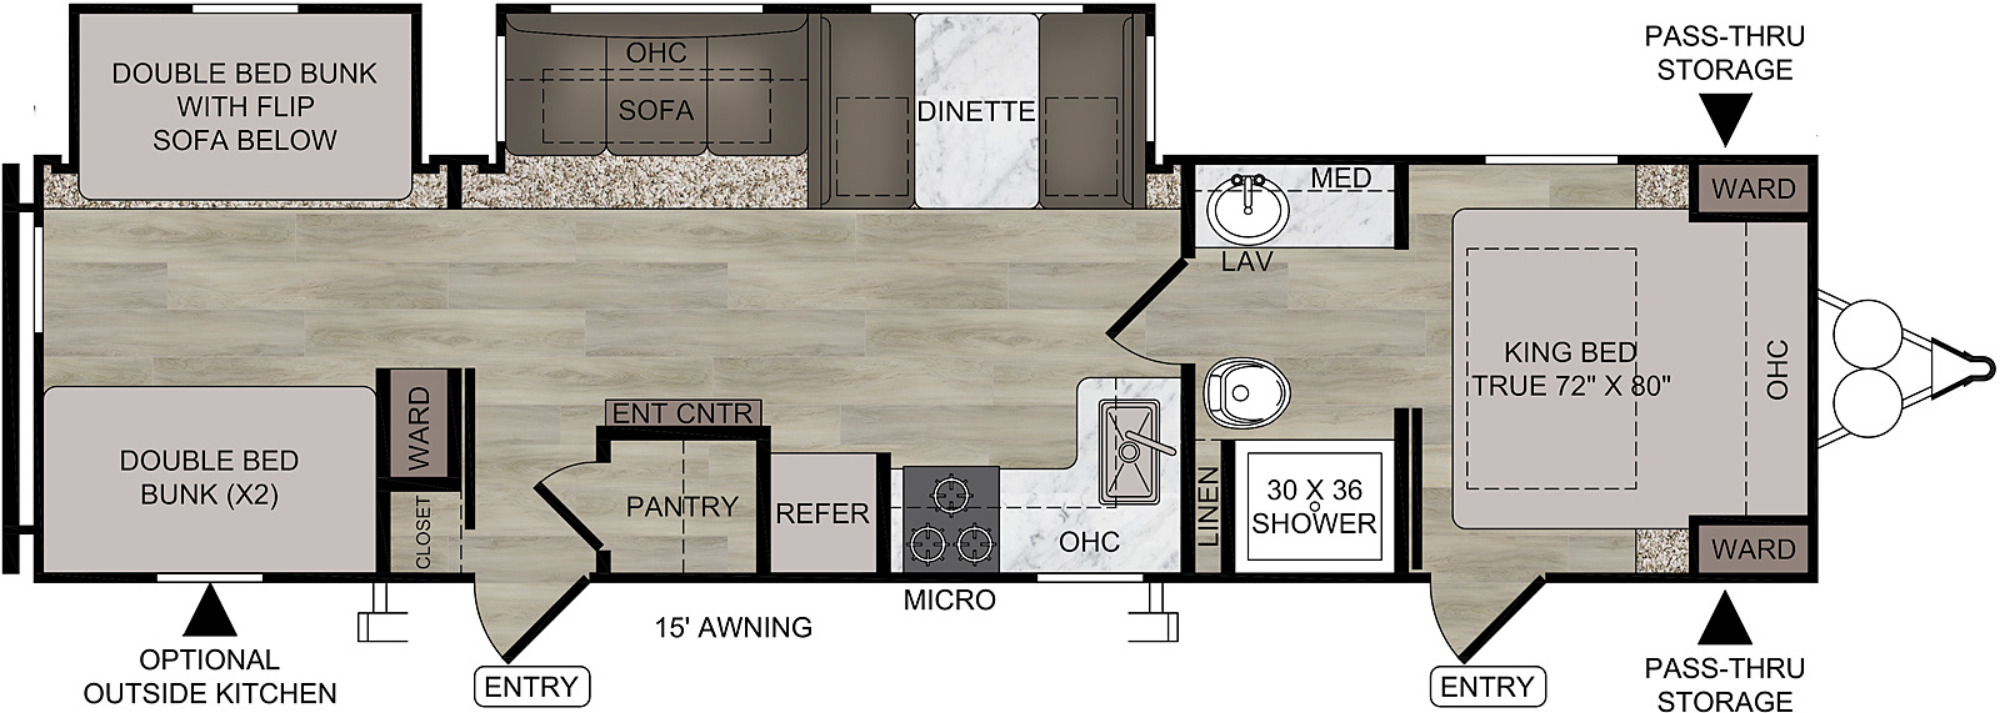 View Floor Plan for 2021 EAST TO WEST DELLA TERRA 312BH